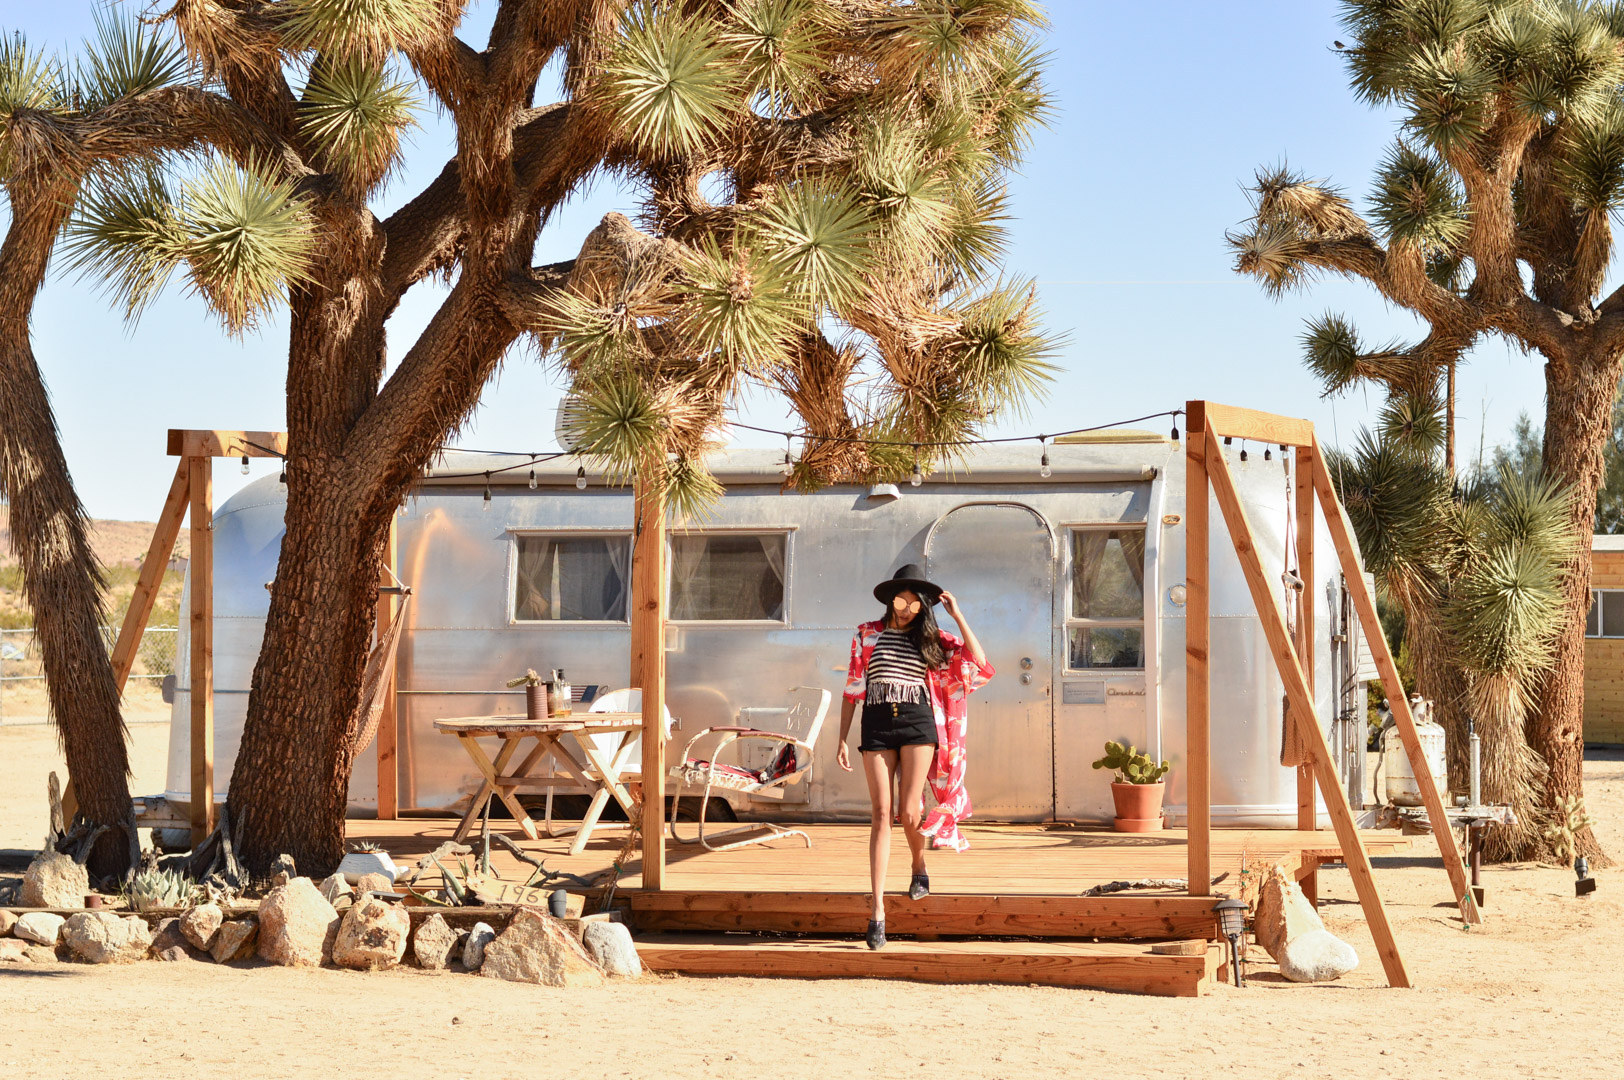 joshua-tree-national-park-california-travel-airbnb-where-to-stay 1